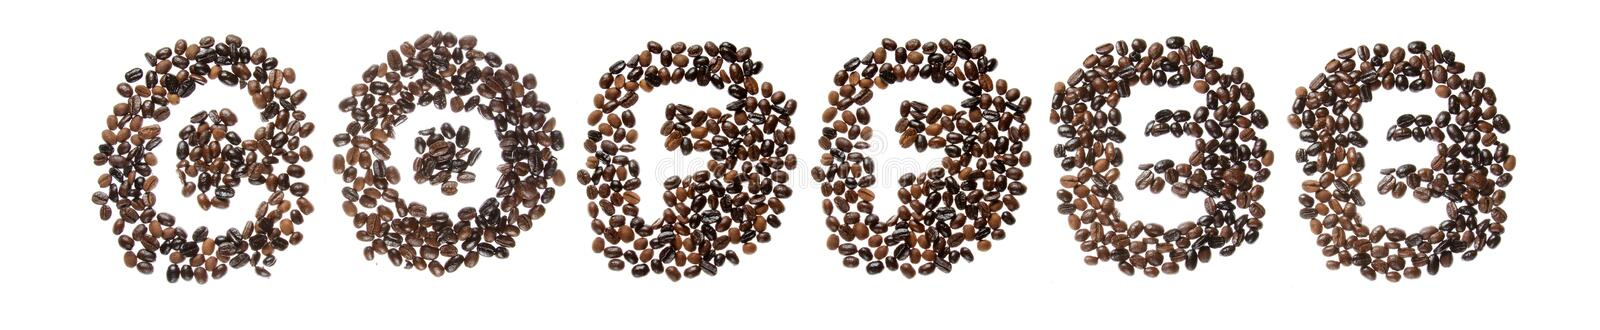 Coffe beans used to spell the word coffee